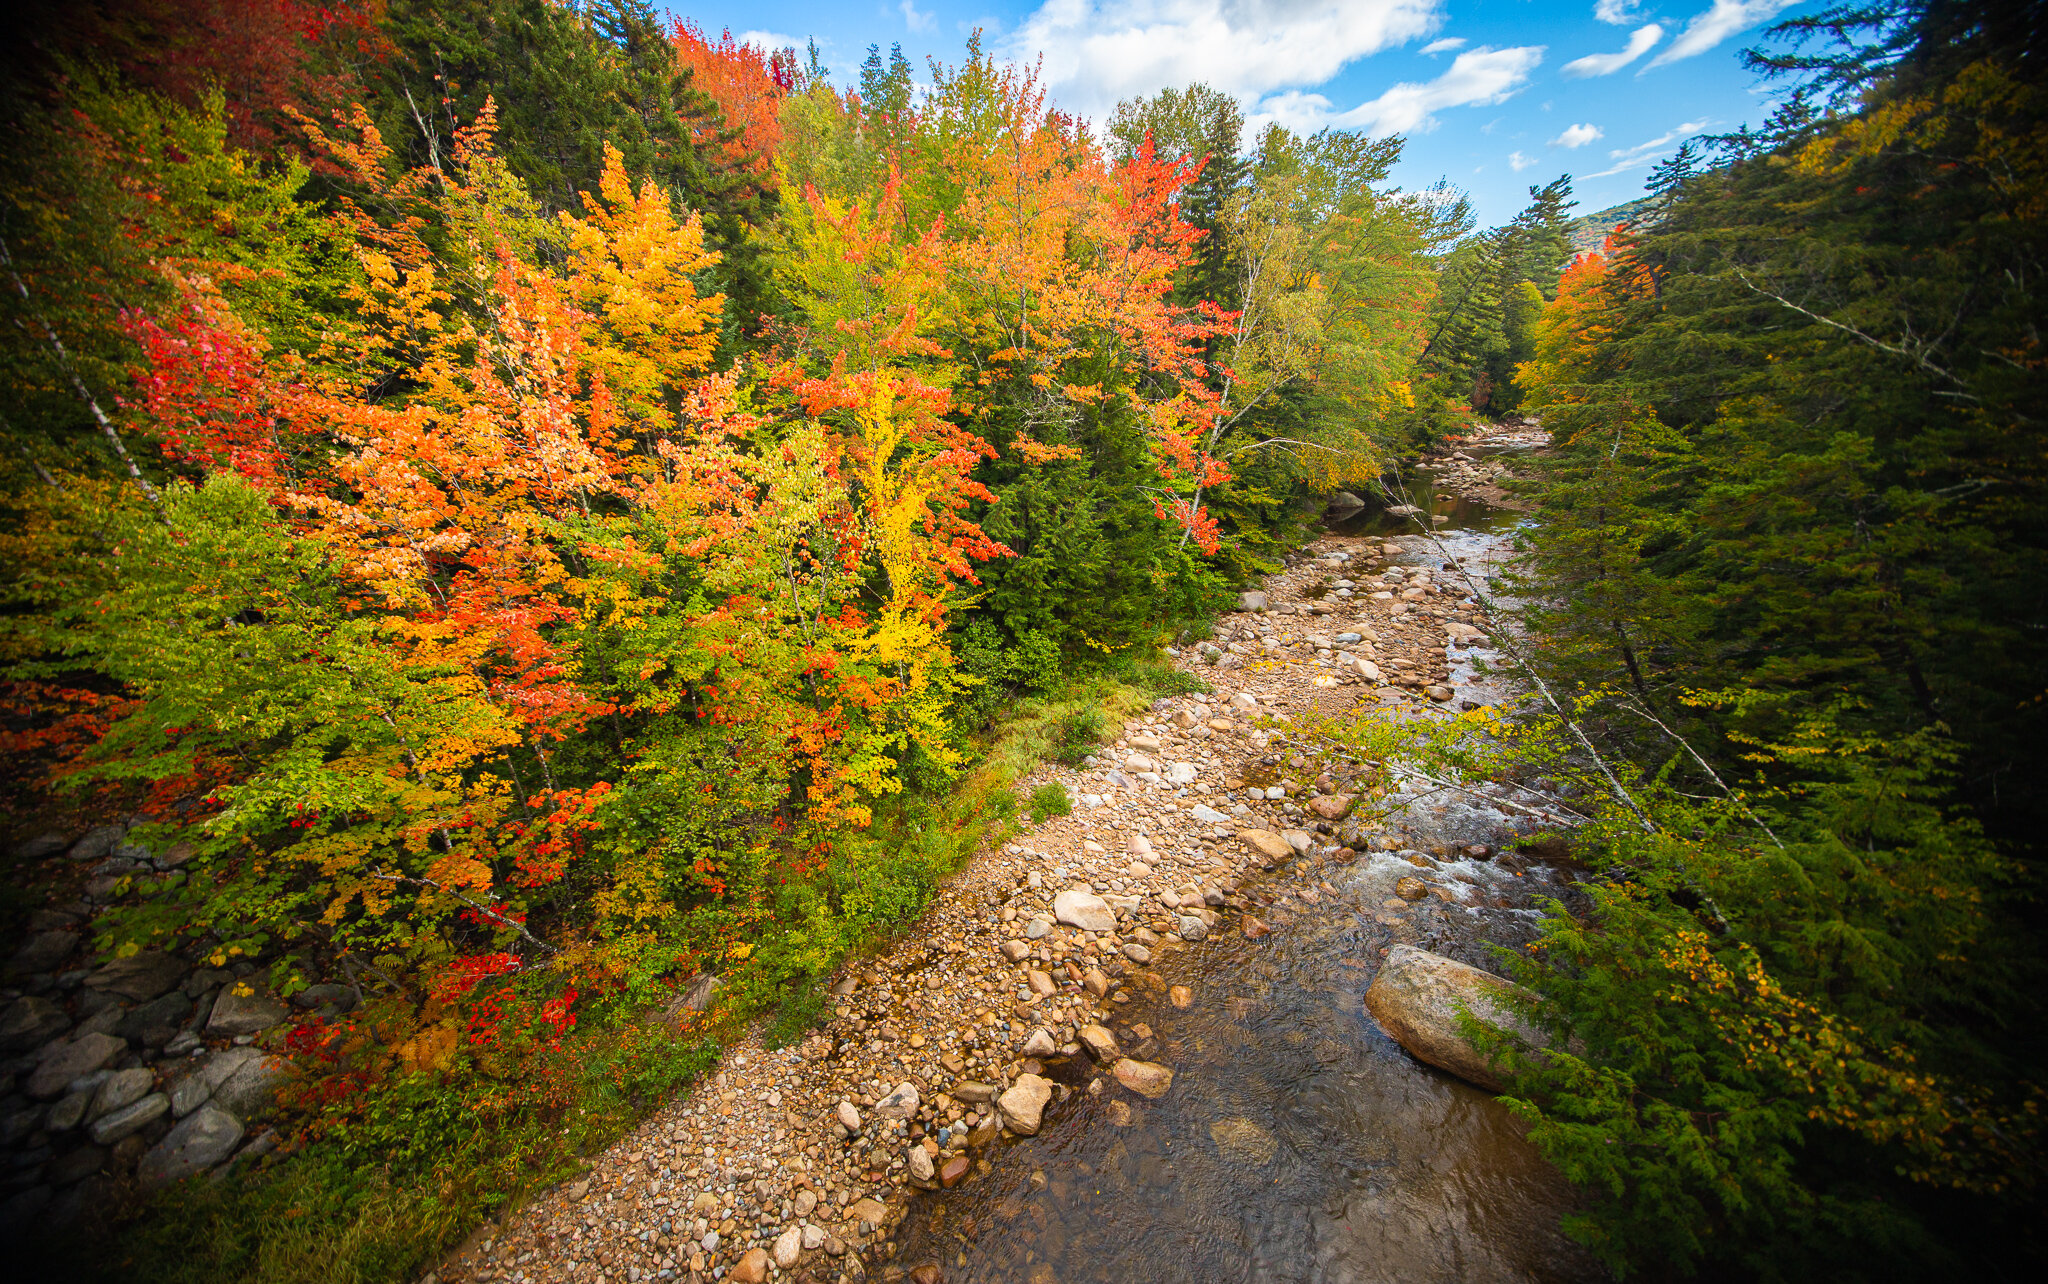 Fall foliage in Waterville Valley.